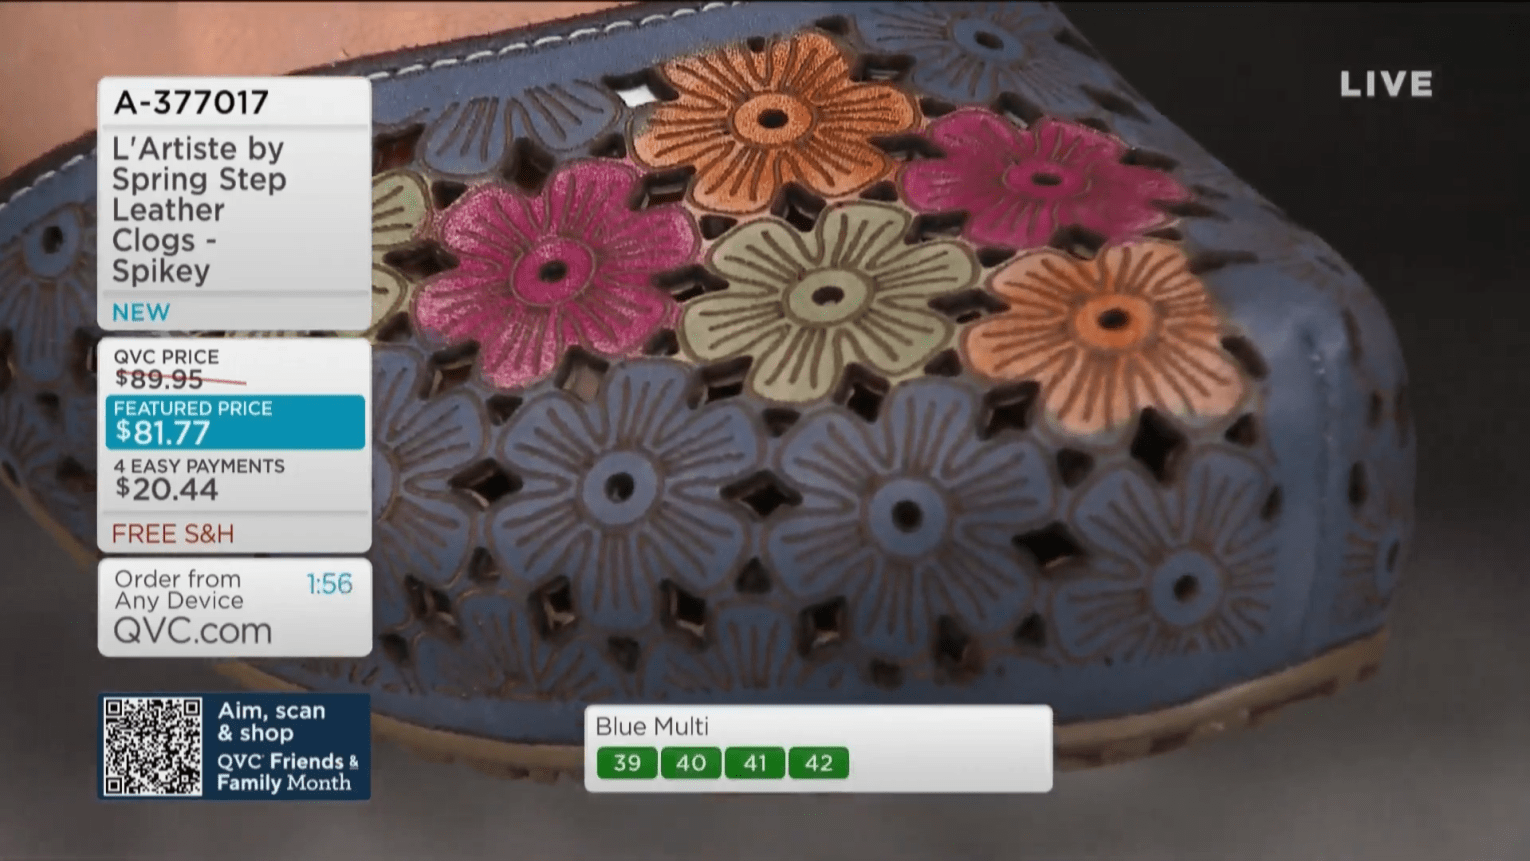 QVC Live Stream 13-34-13 screenshot